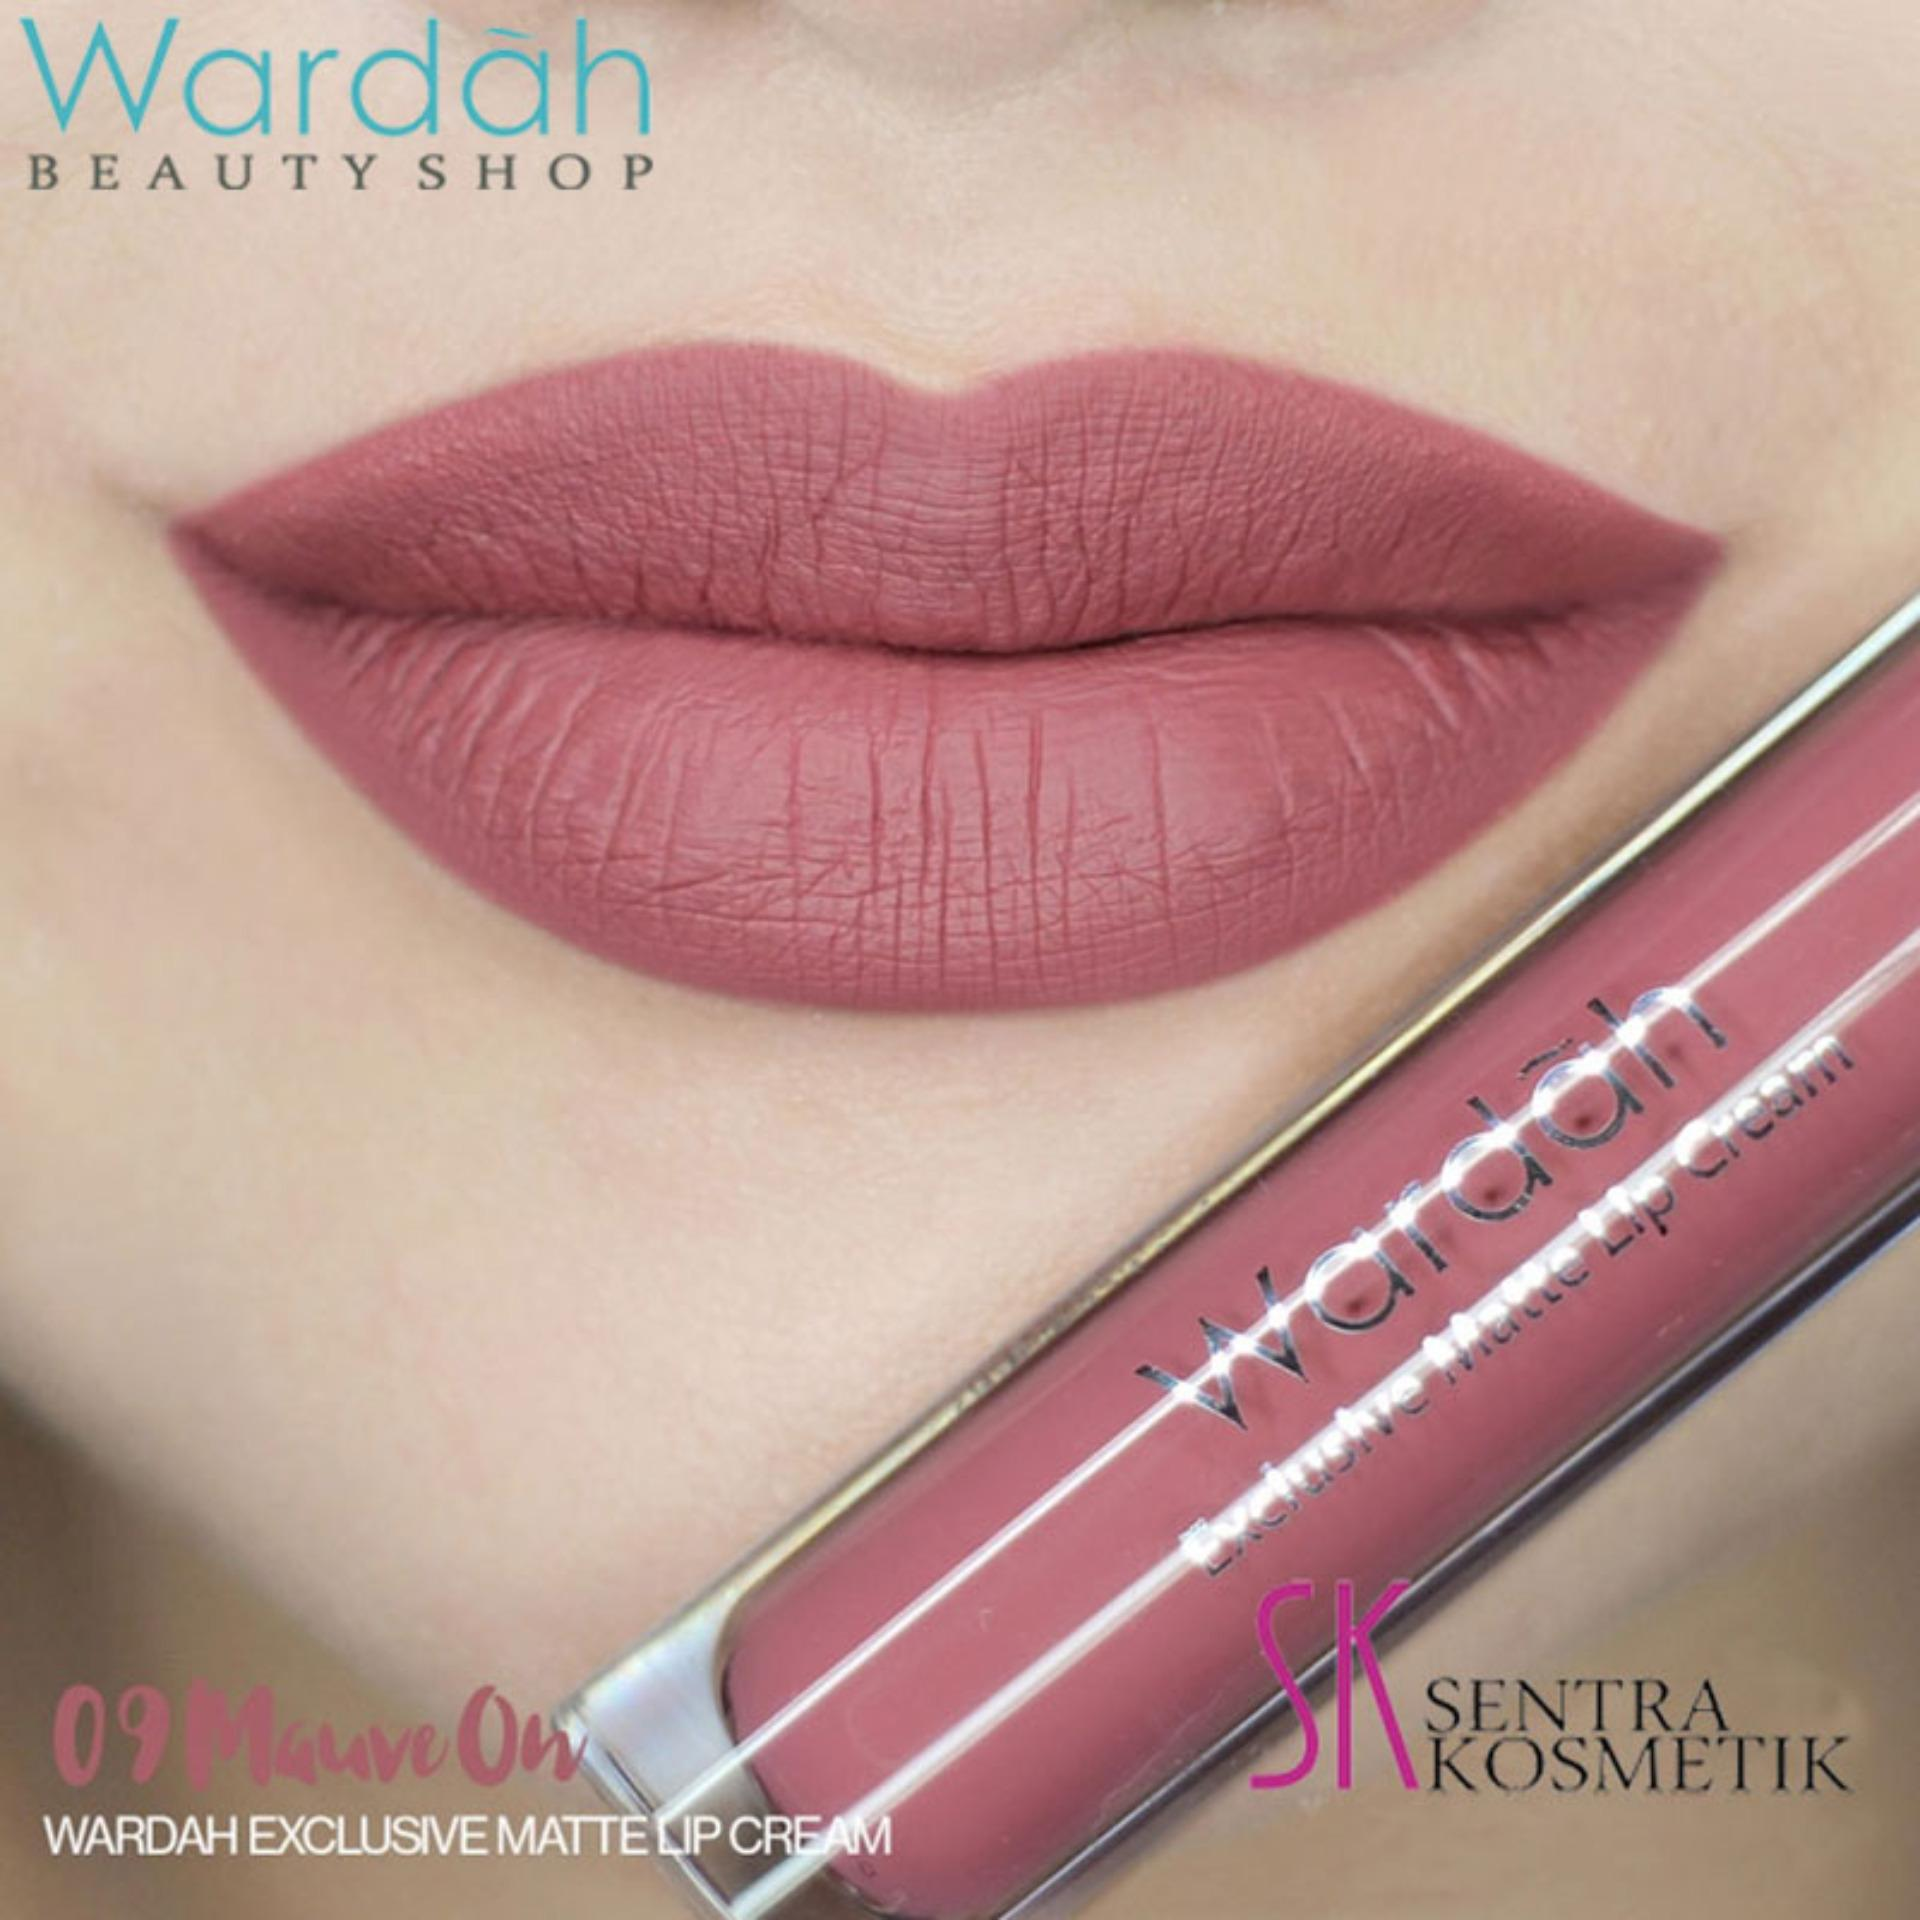 Wardah Exclusive MATTE LIP CREAM 09 - mauve on